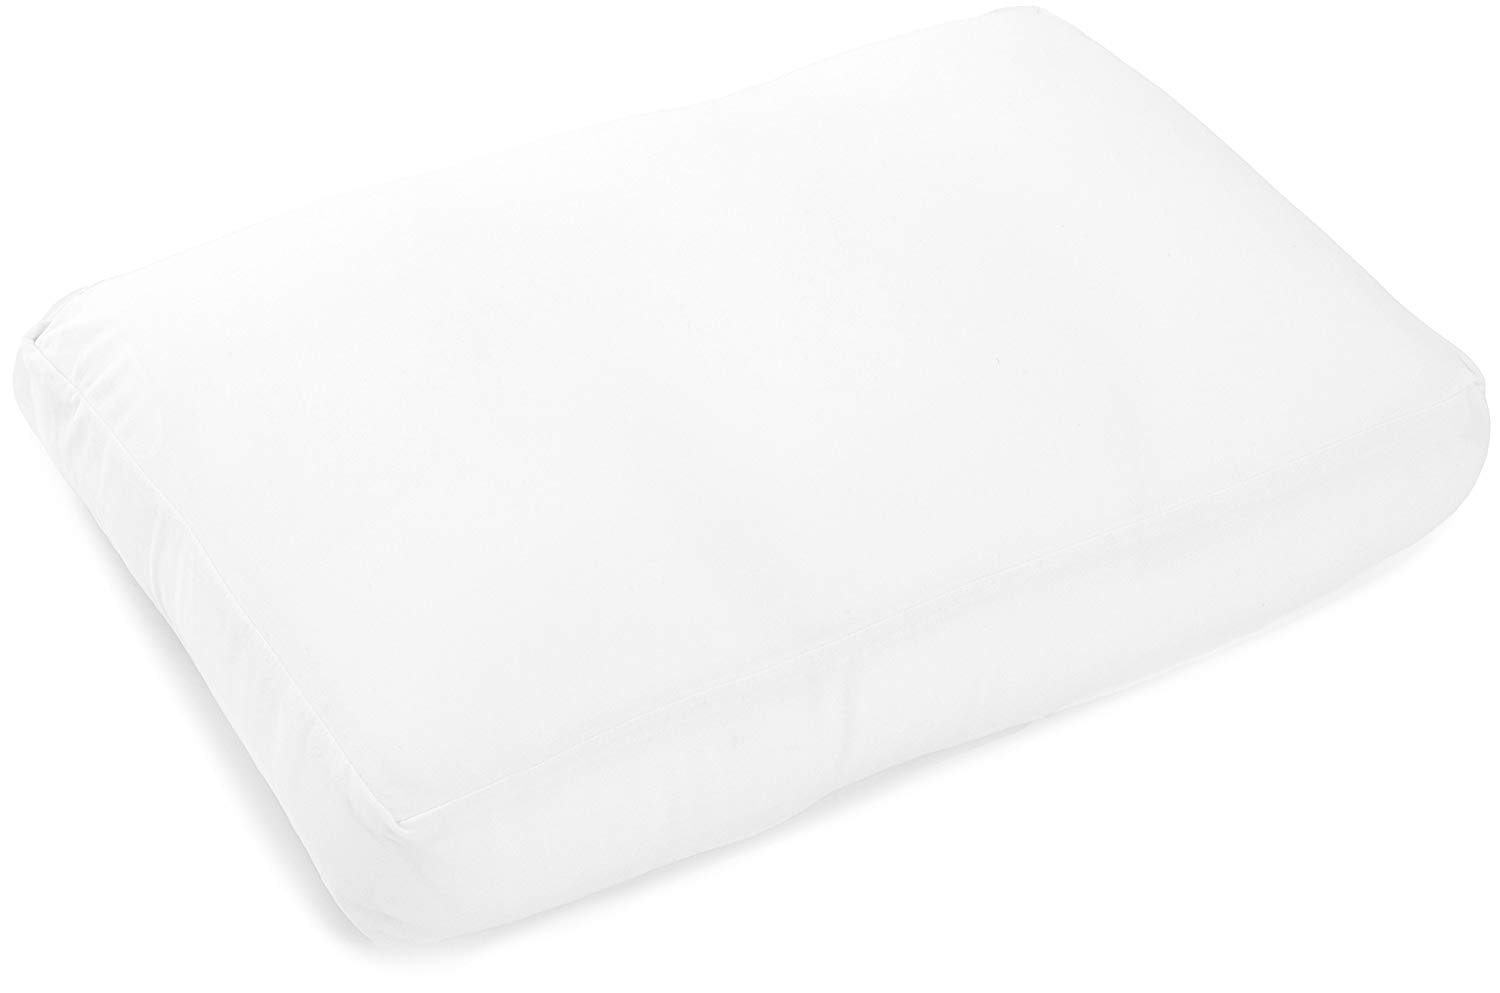 Hydraluxe Premium Molded Foam Bed Pillow Standard White Comfort Revolution cheap exquisite comfort contour pillow, find exquisite